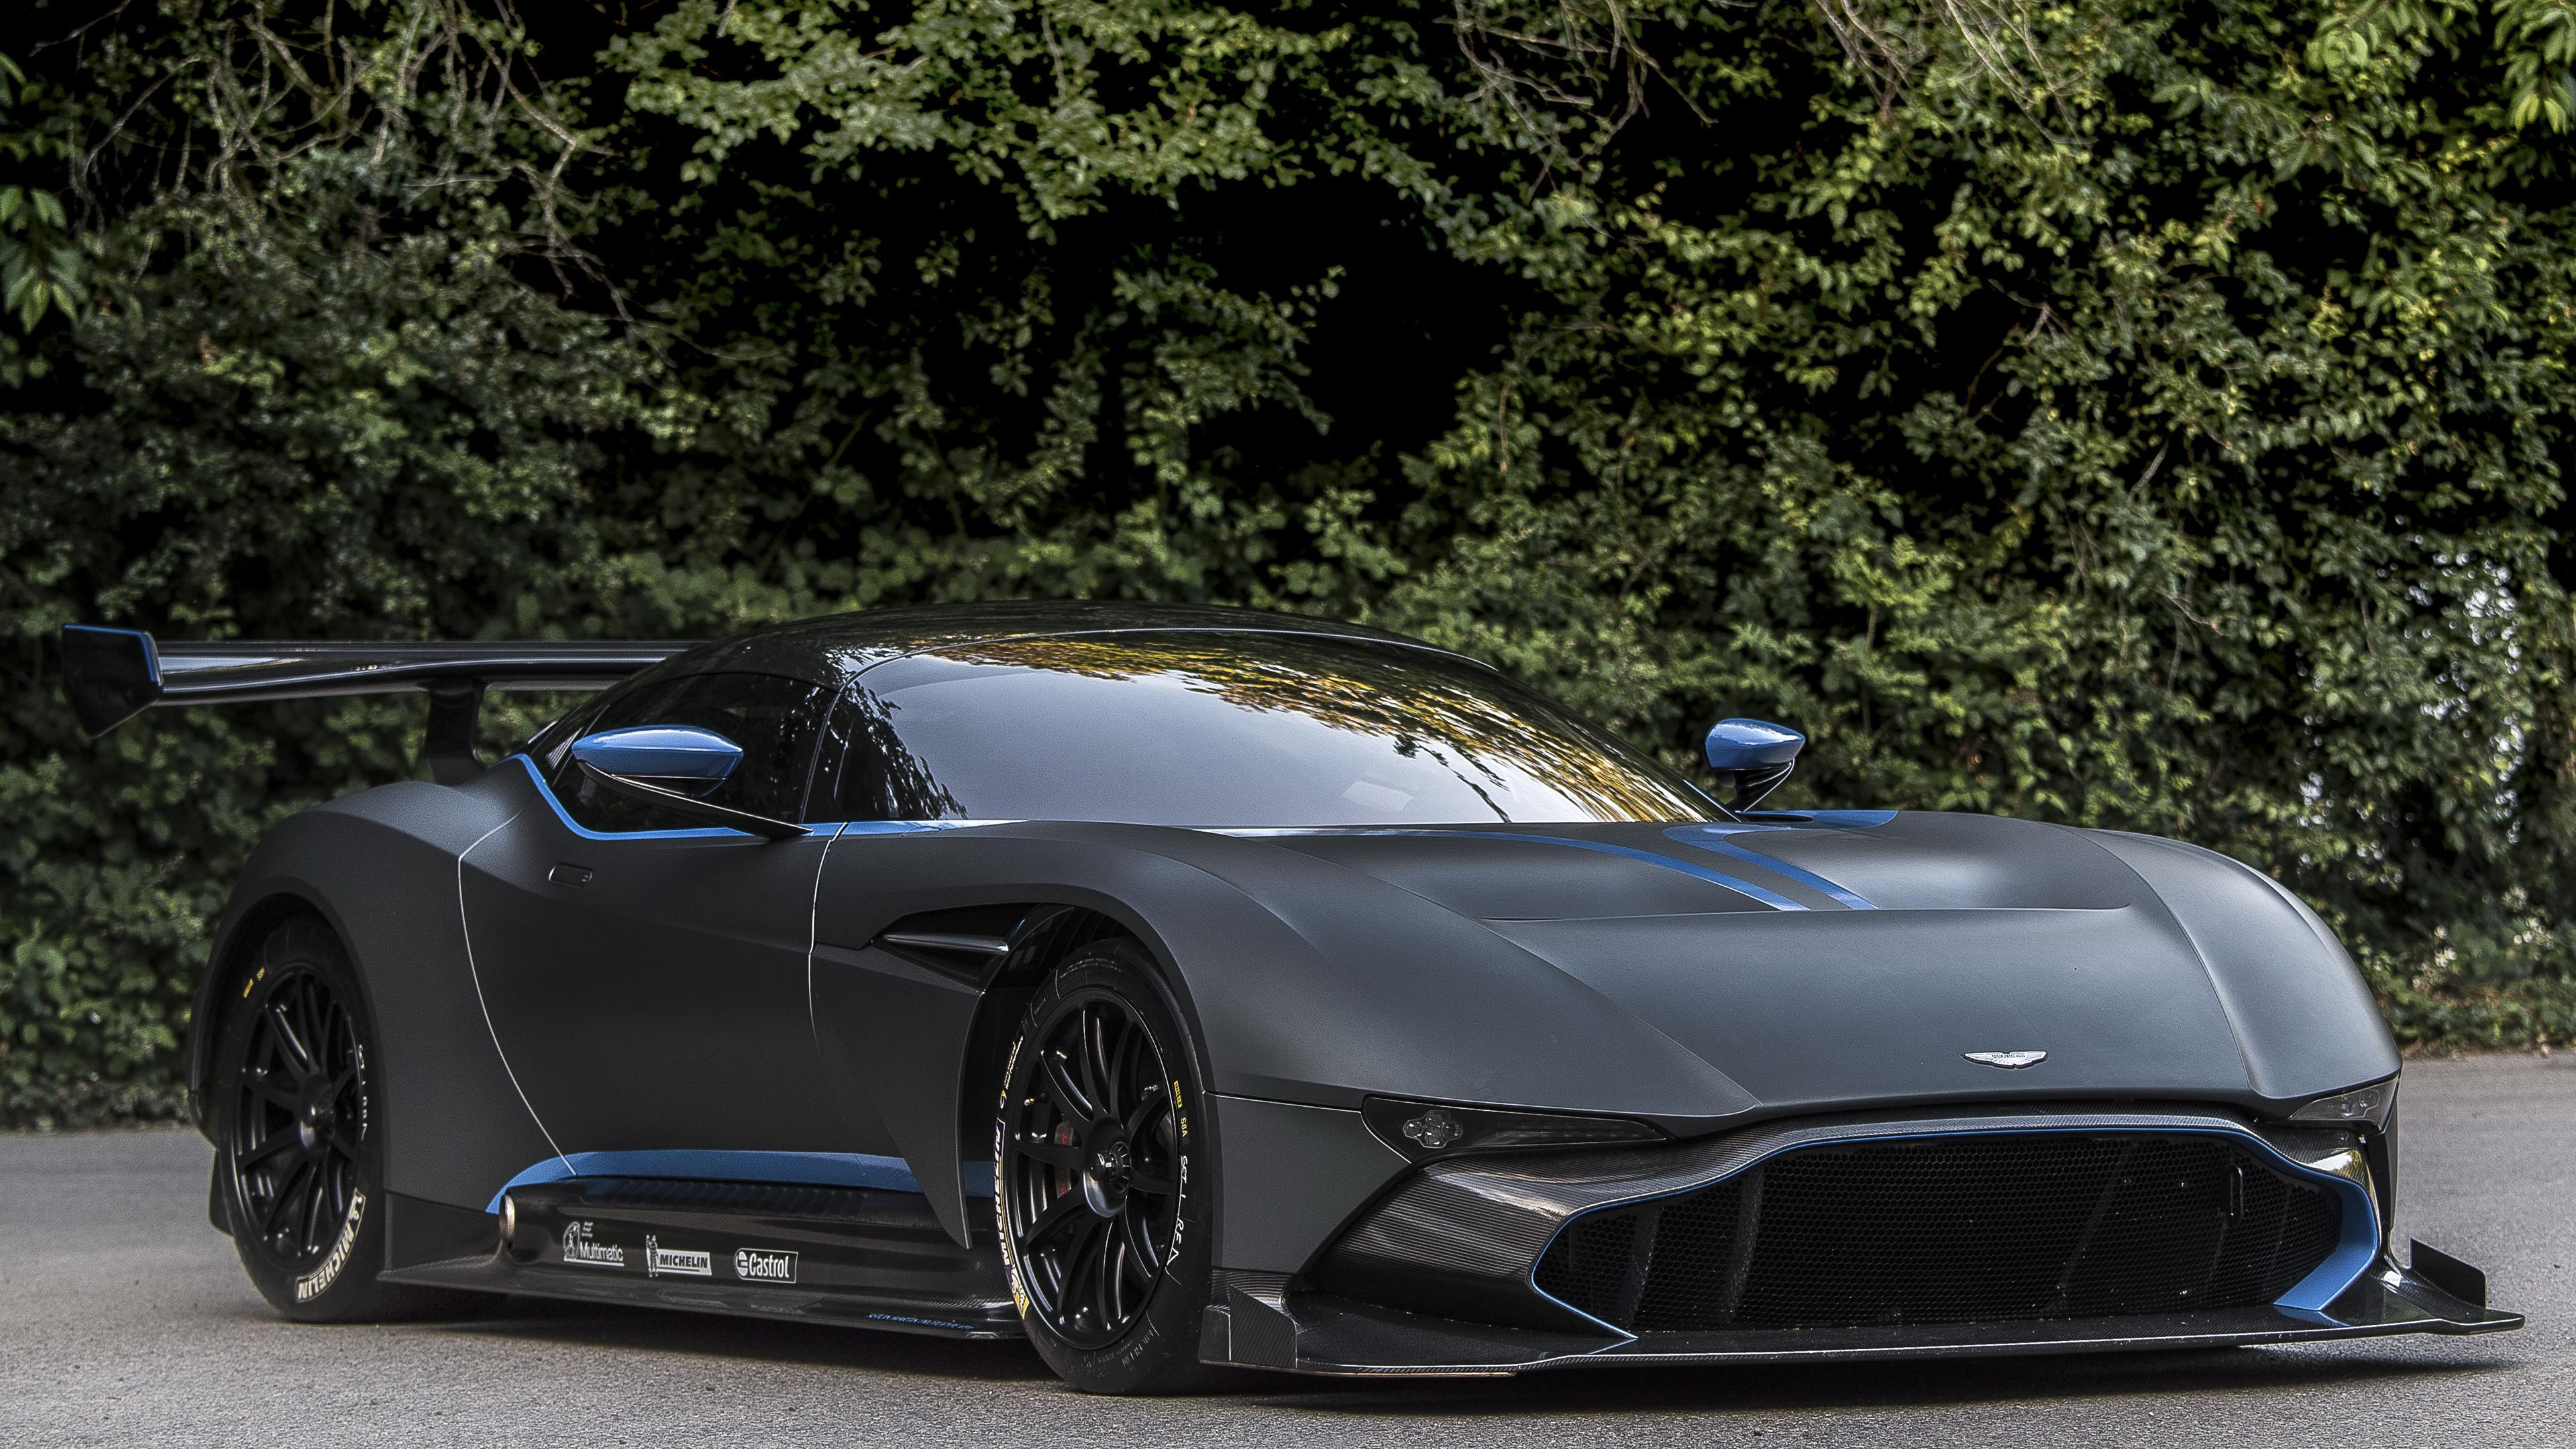 39 aston martin vulcan hd wallpapers | background images - wallpaper